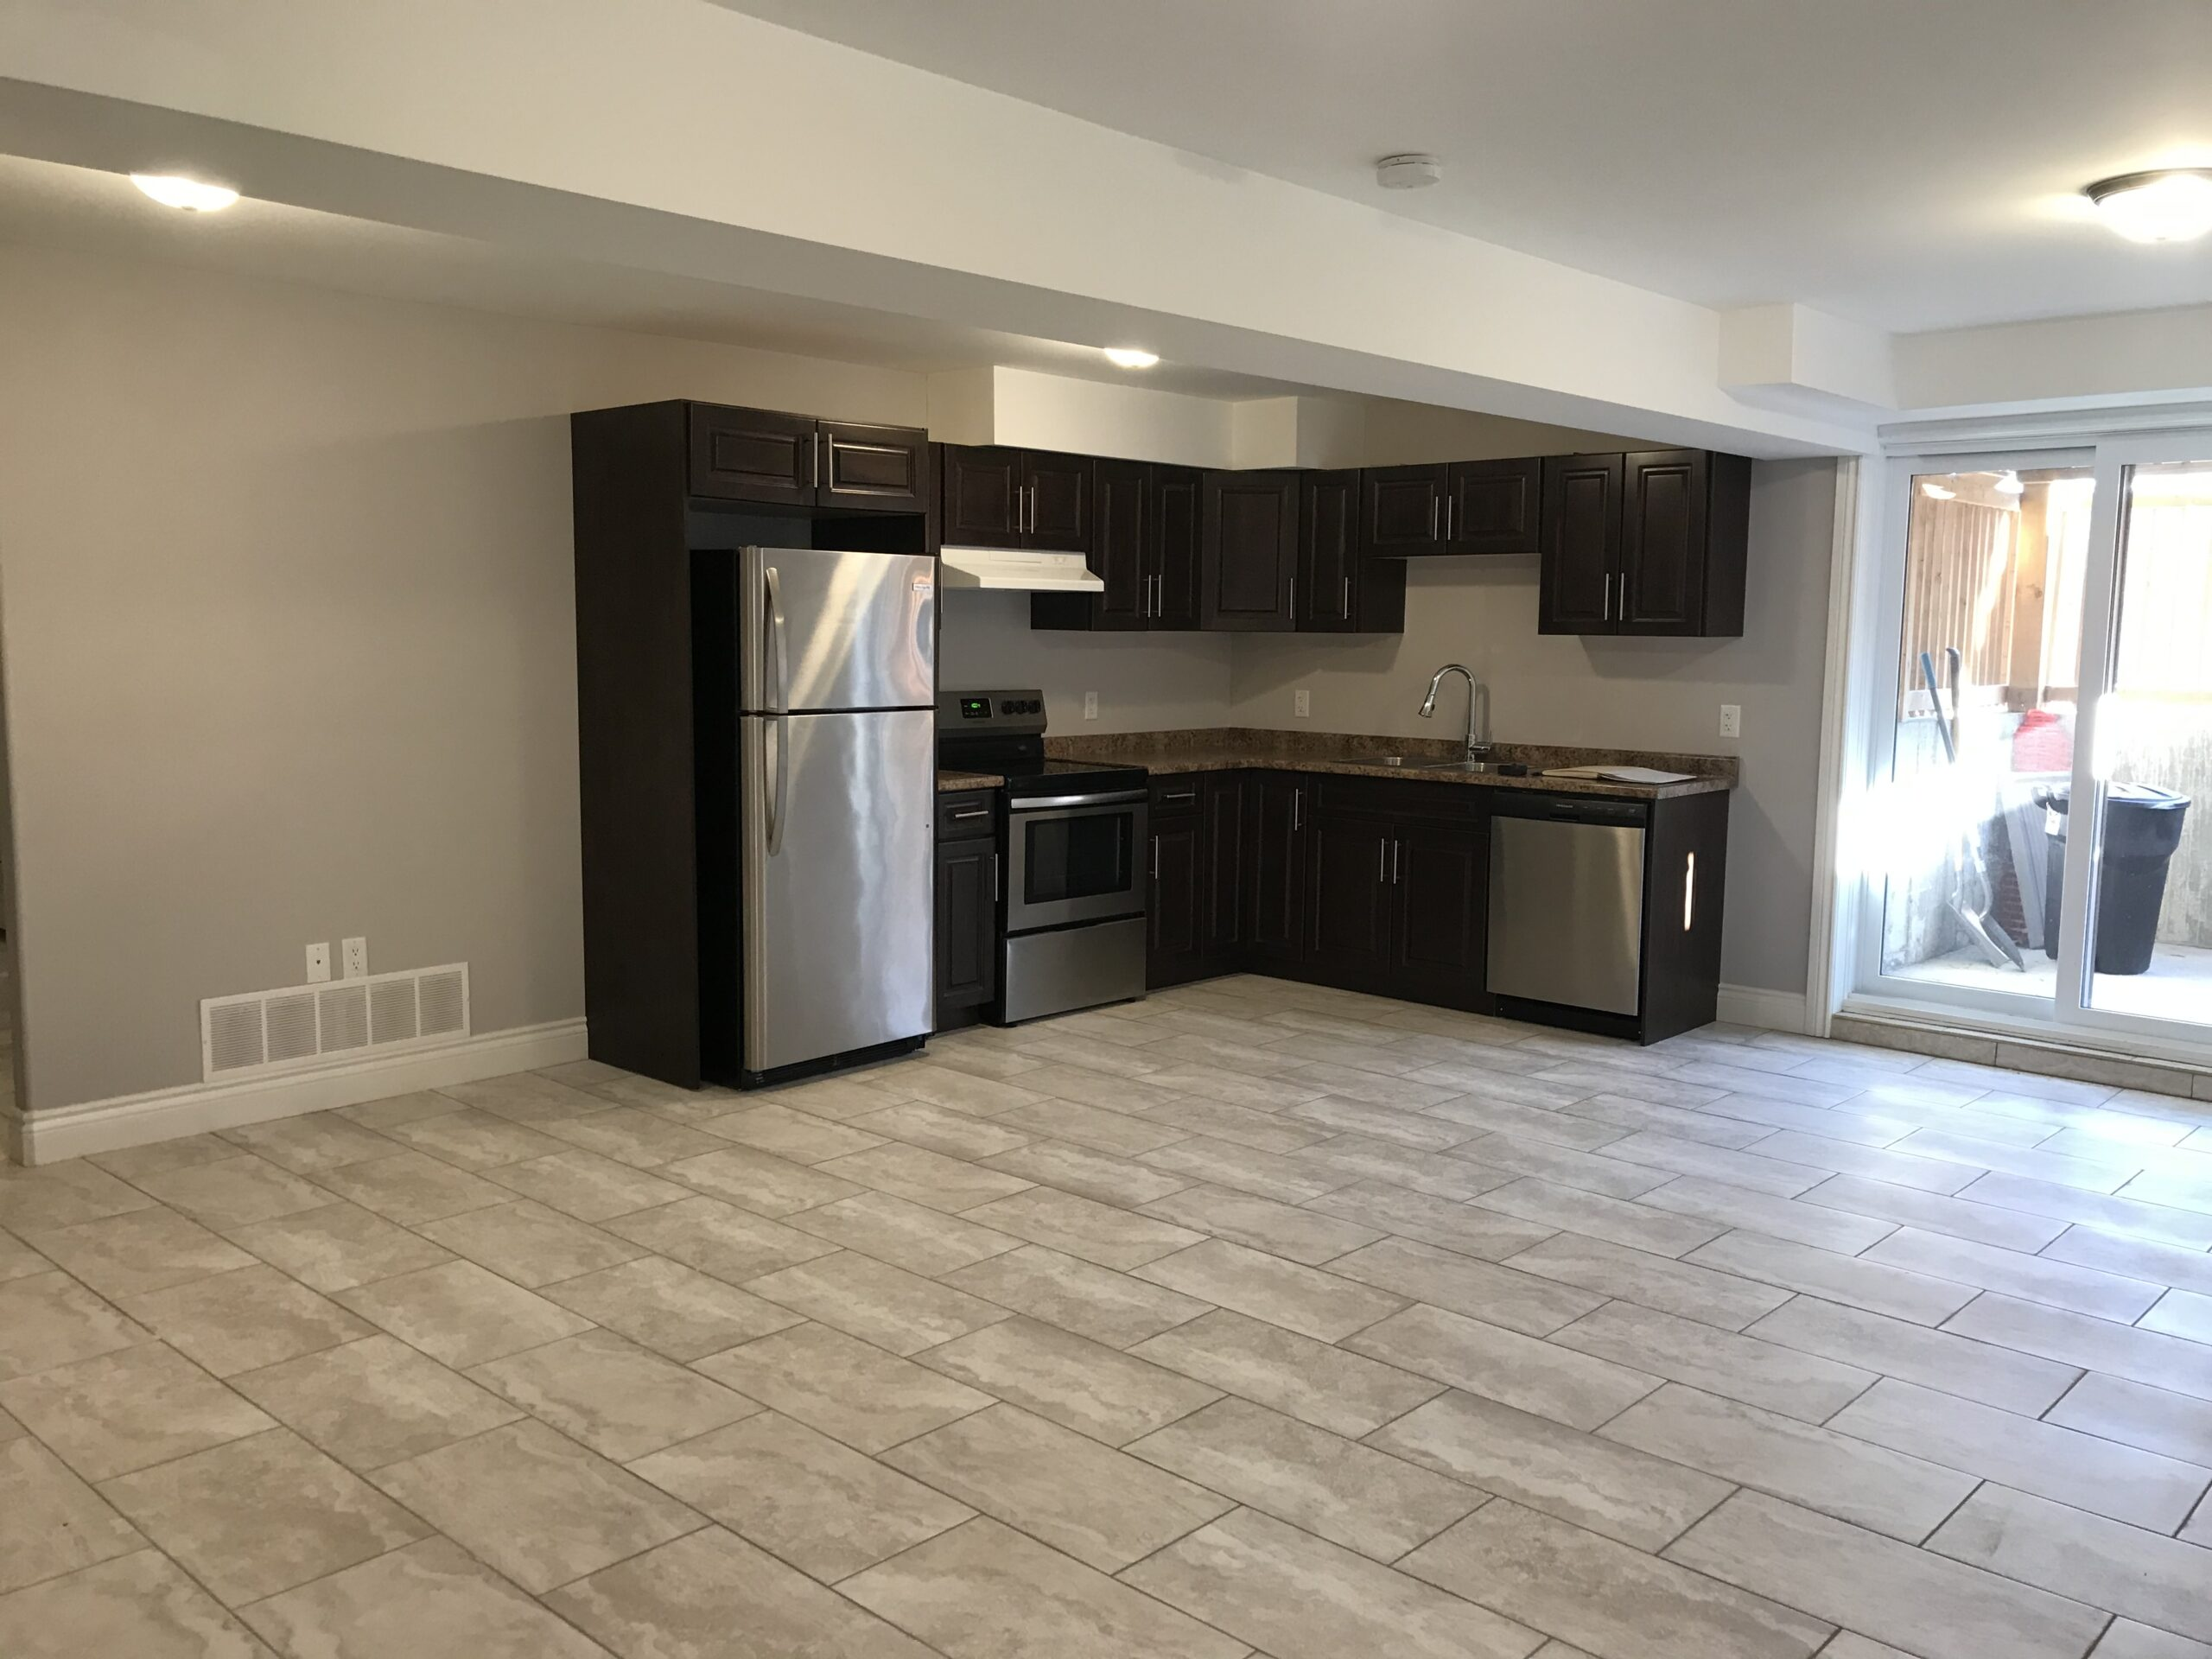 BRAND NEW LOWER LEVEL SUITE IN PRIME AREA OF SOUTH WINDSOR